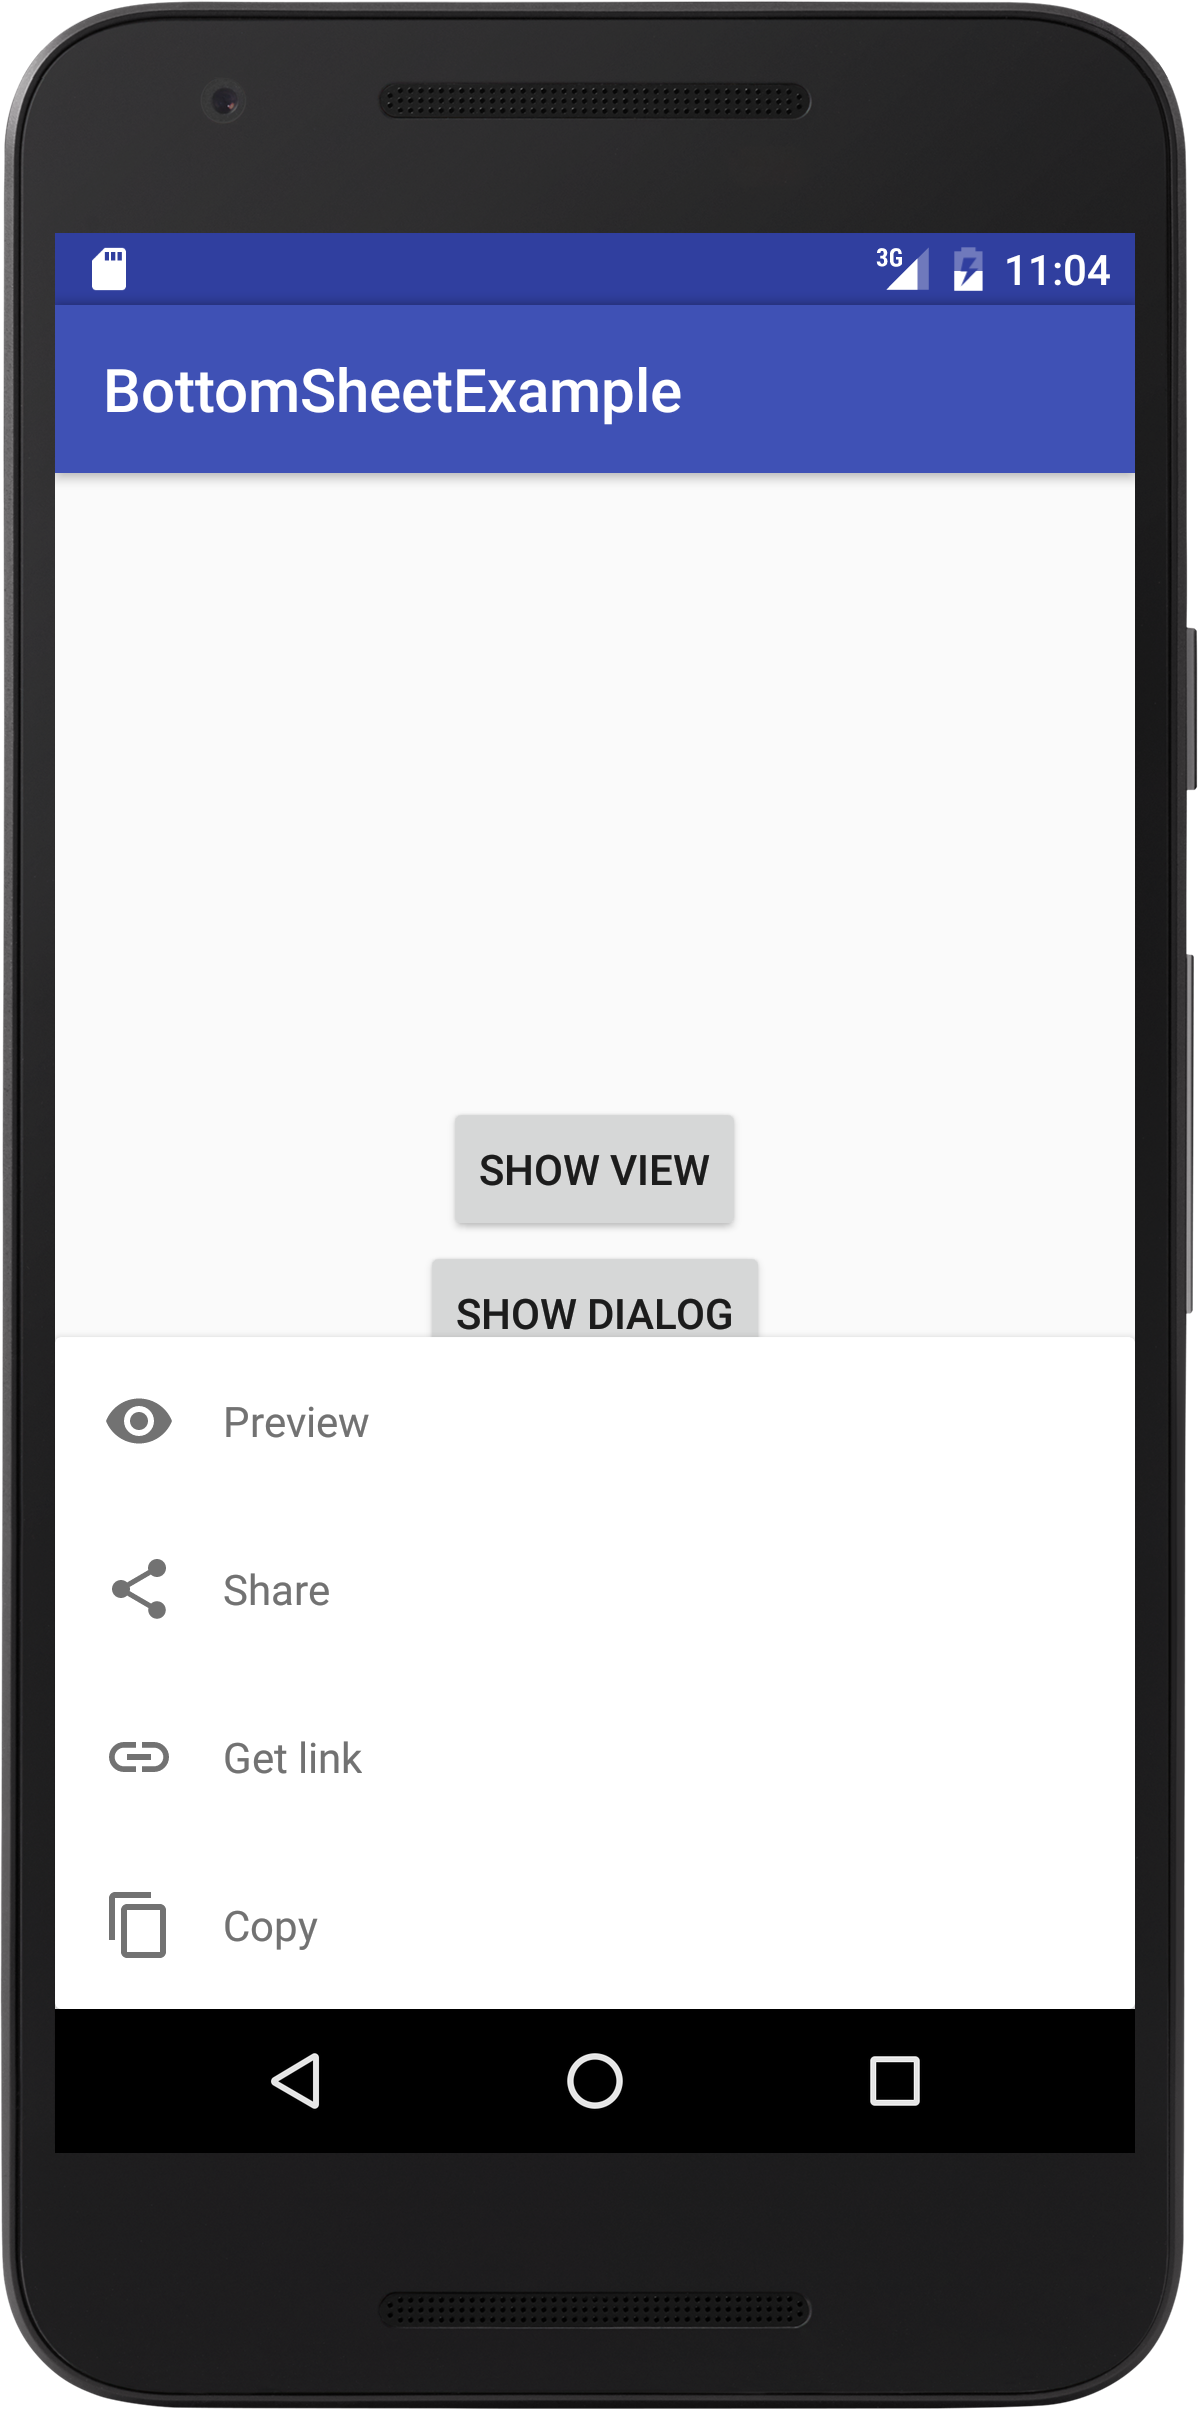 AndroidLibs/弹框Dialog at master · XXApple/AndroidLibs · GitHub